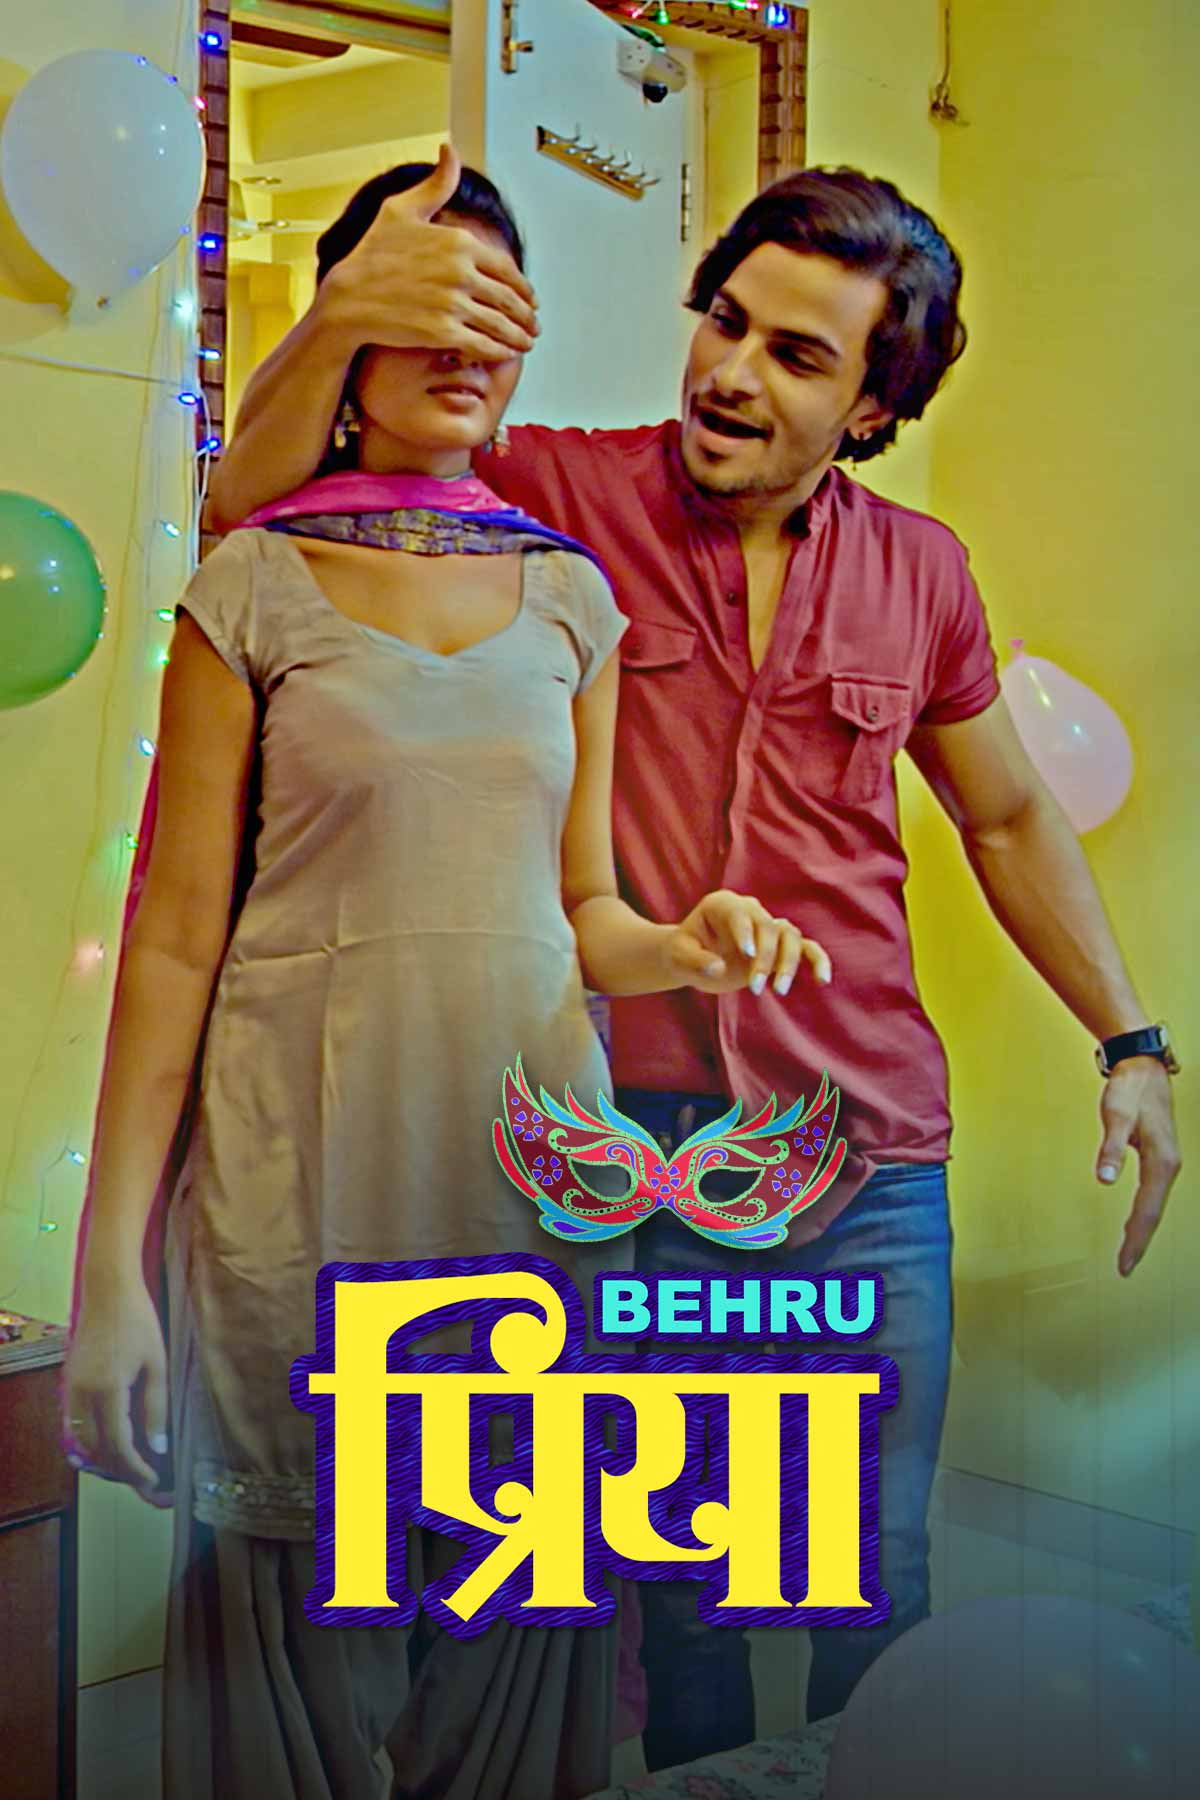 Behrupriya (2020) S01 Hindi Kooku App Complete Web Series 720p HDRip 400MB Download